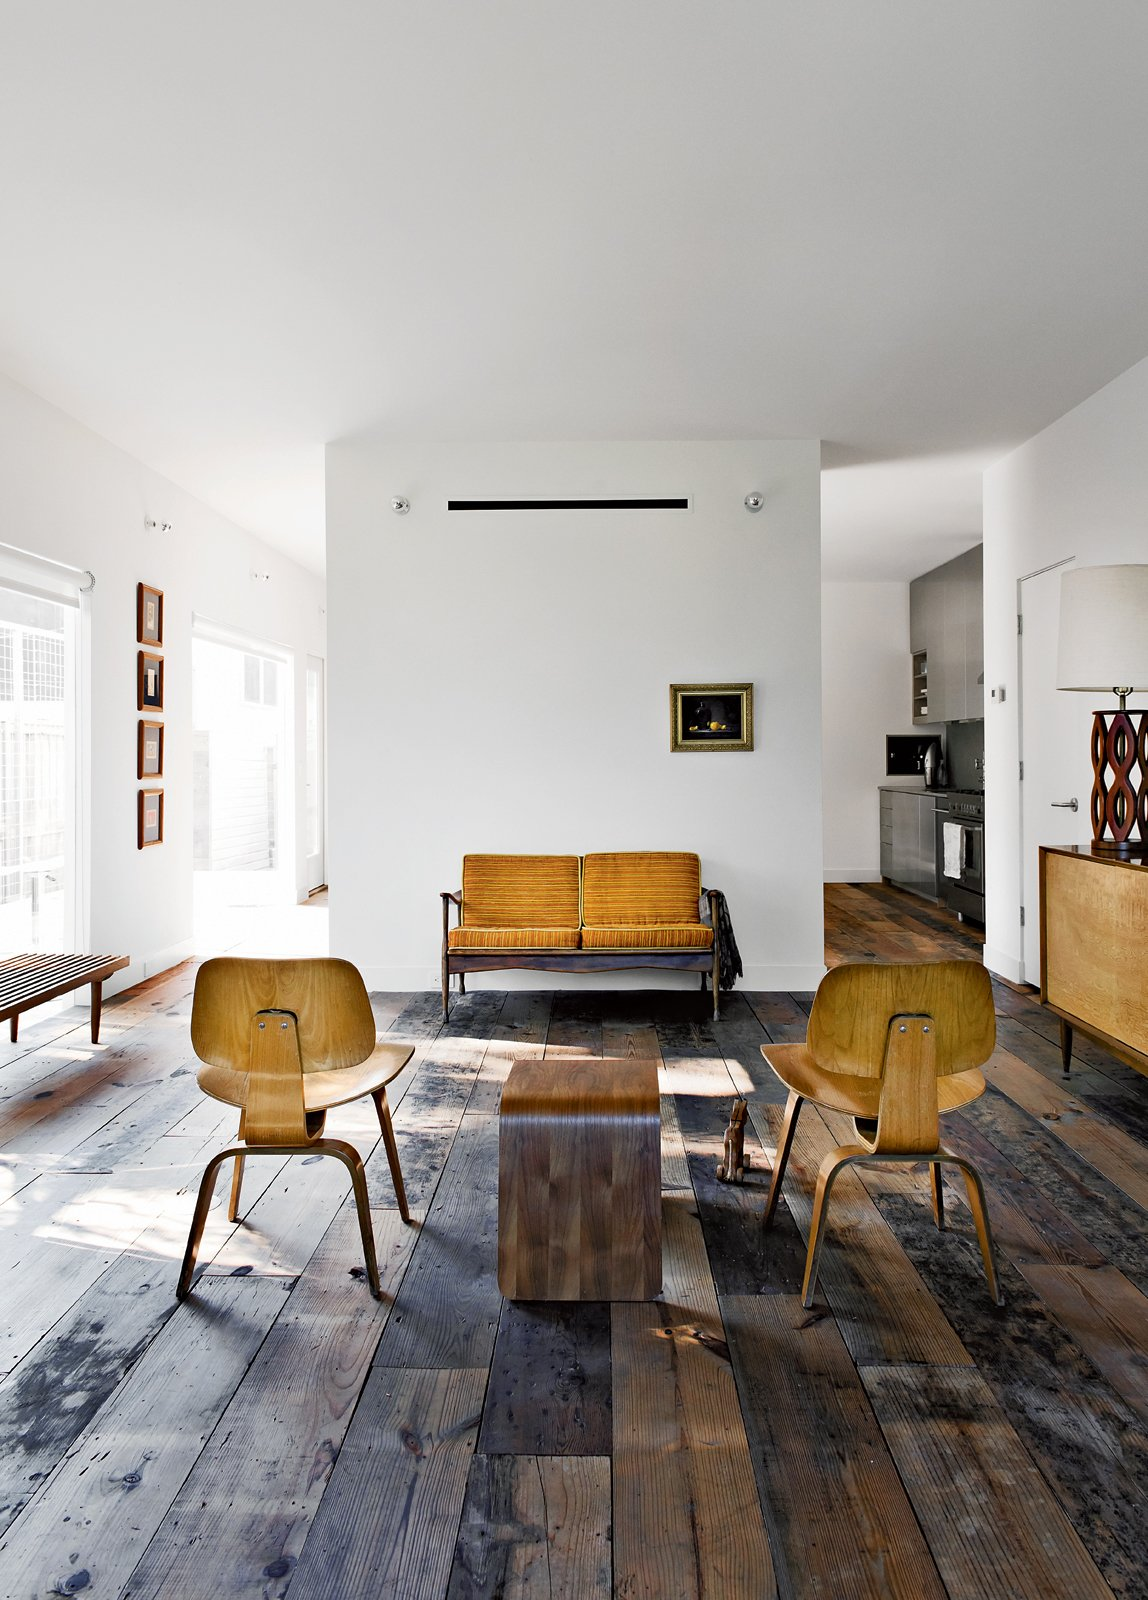 Walsh and Strongin's living room strikes a more rustic note. Row on 25th: Affordable Housing Development in Houston - Photo 14 of 15